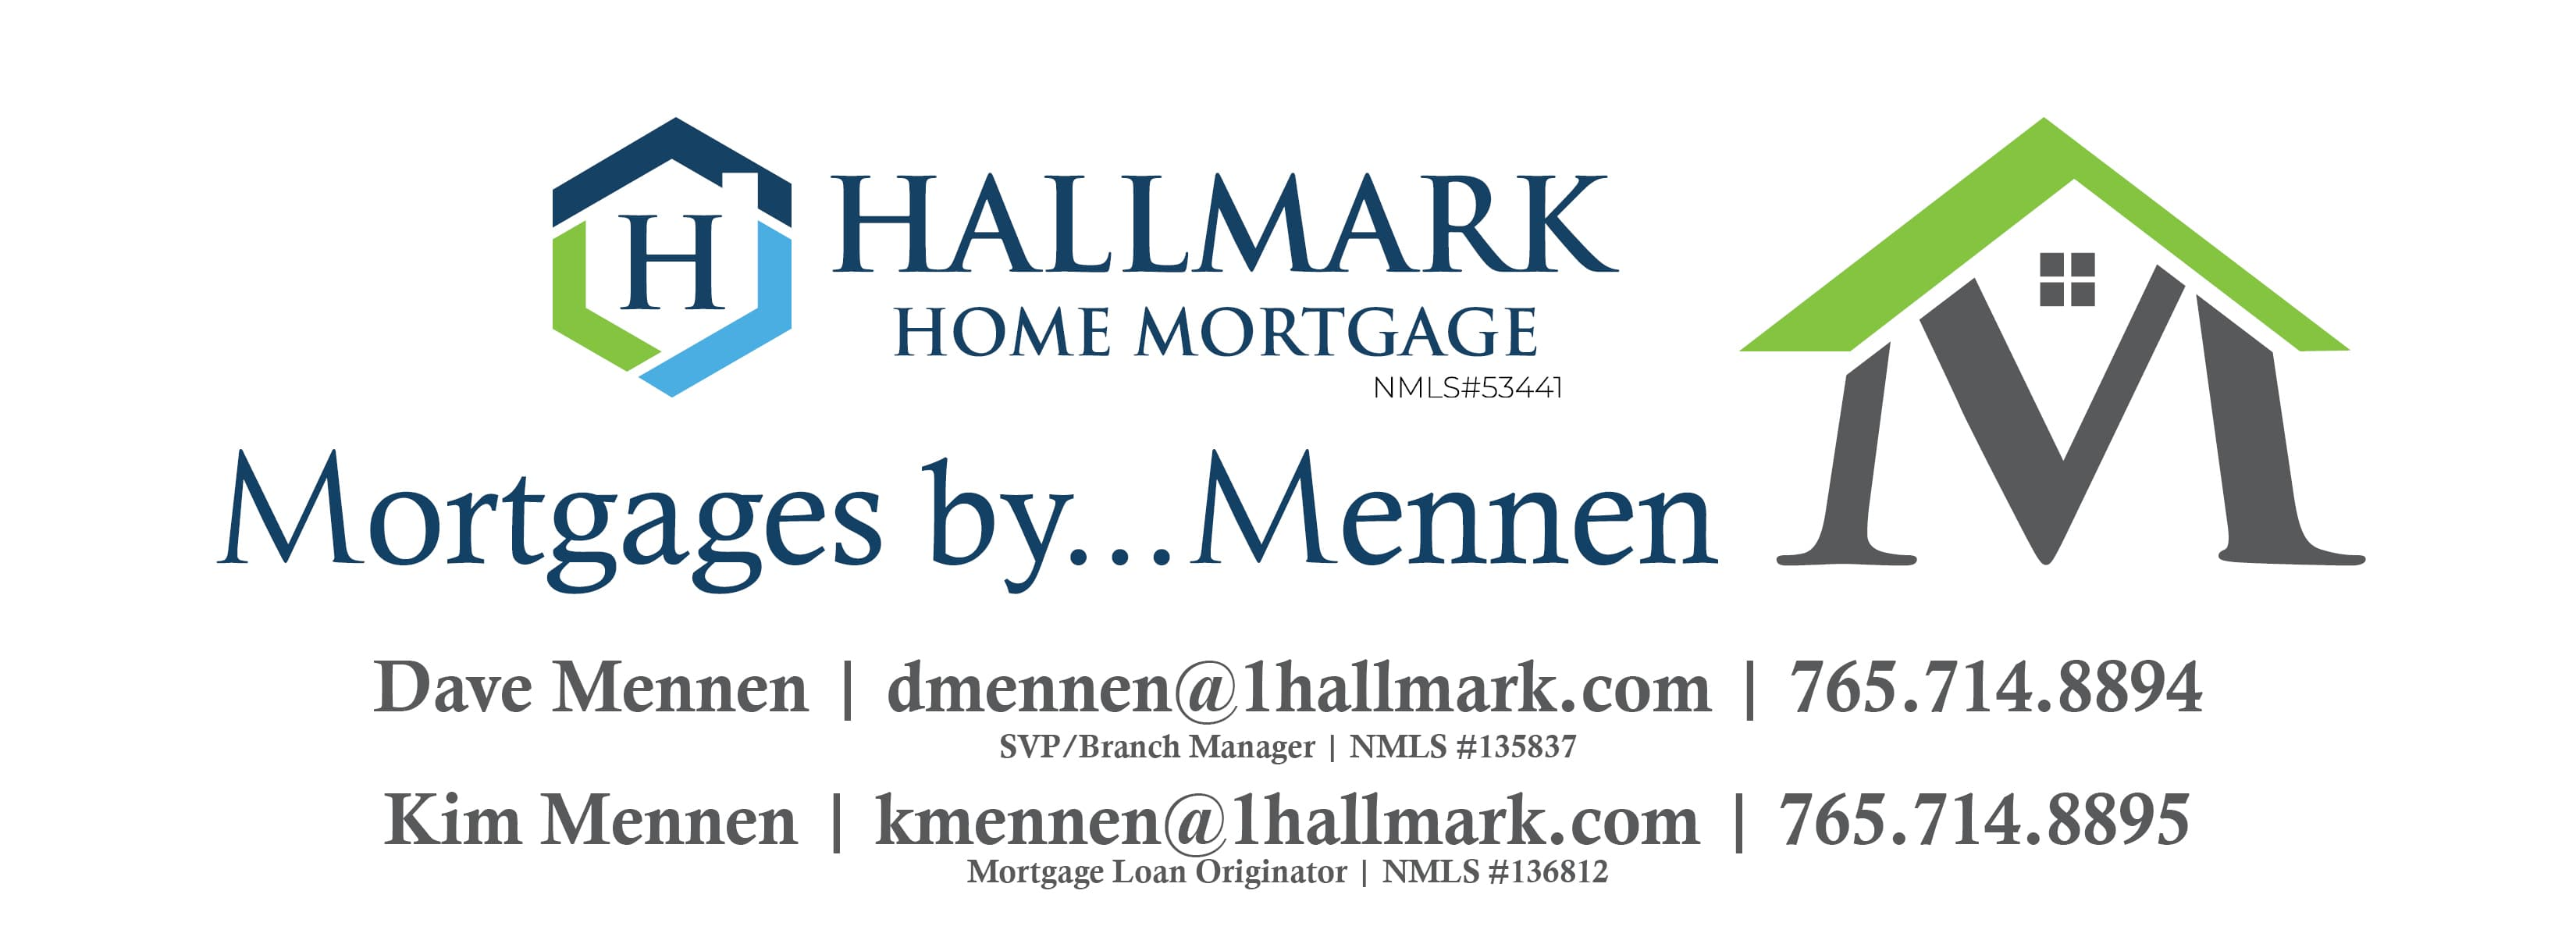 Hallmark Home Mortgage - Mortgages by Mennen Logo